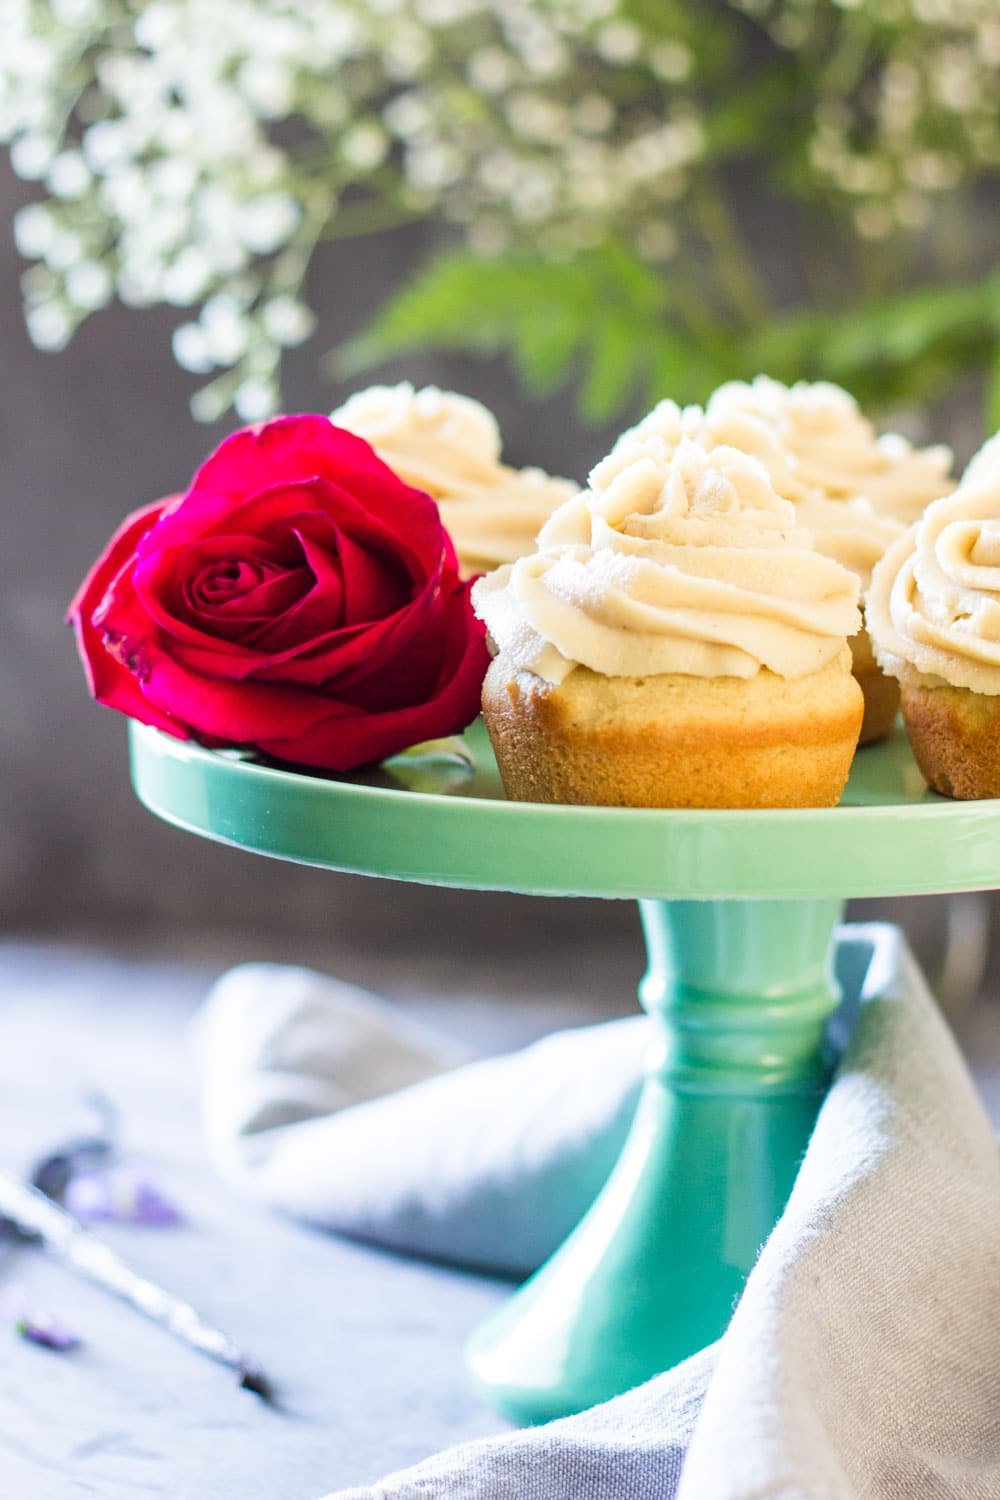 Moist Vanilla Cupcakes on a green cake stand with a rose.